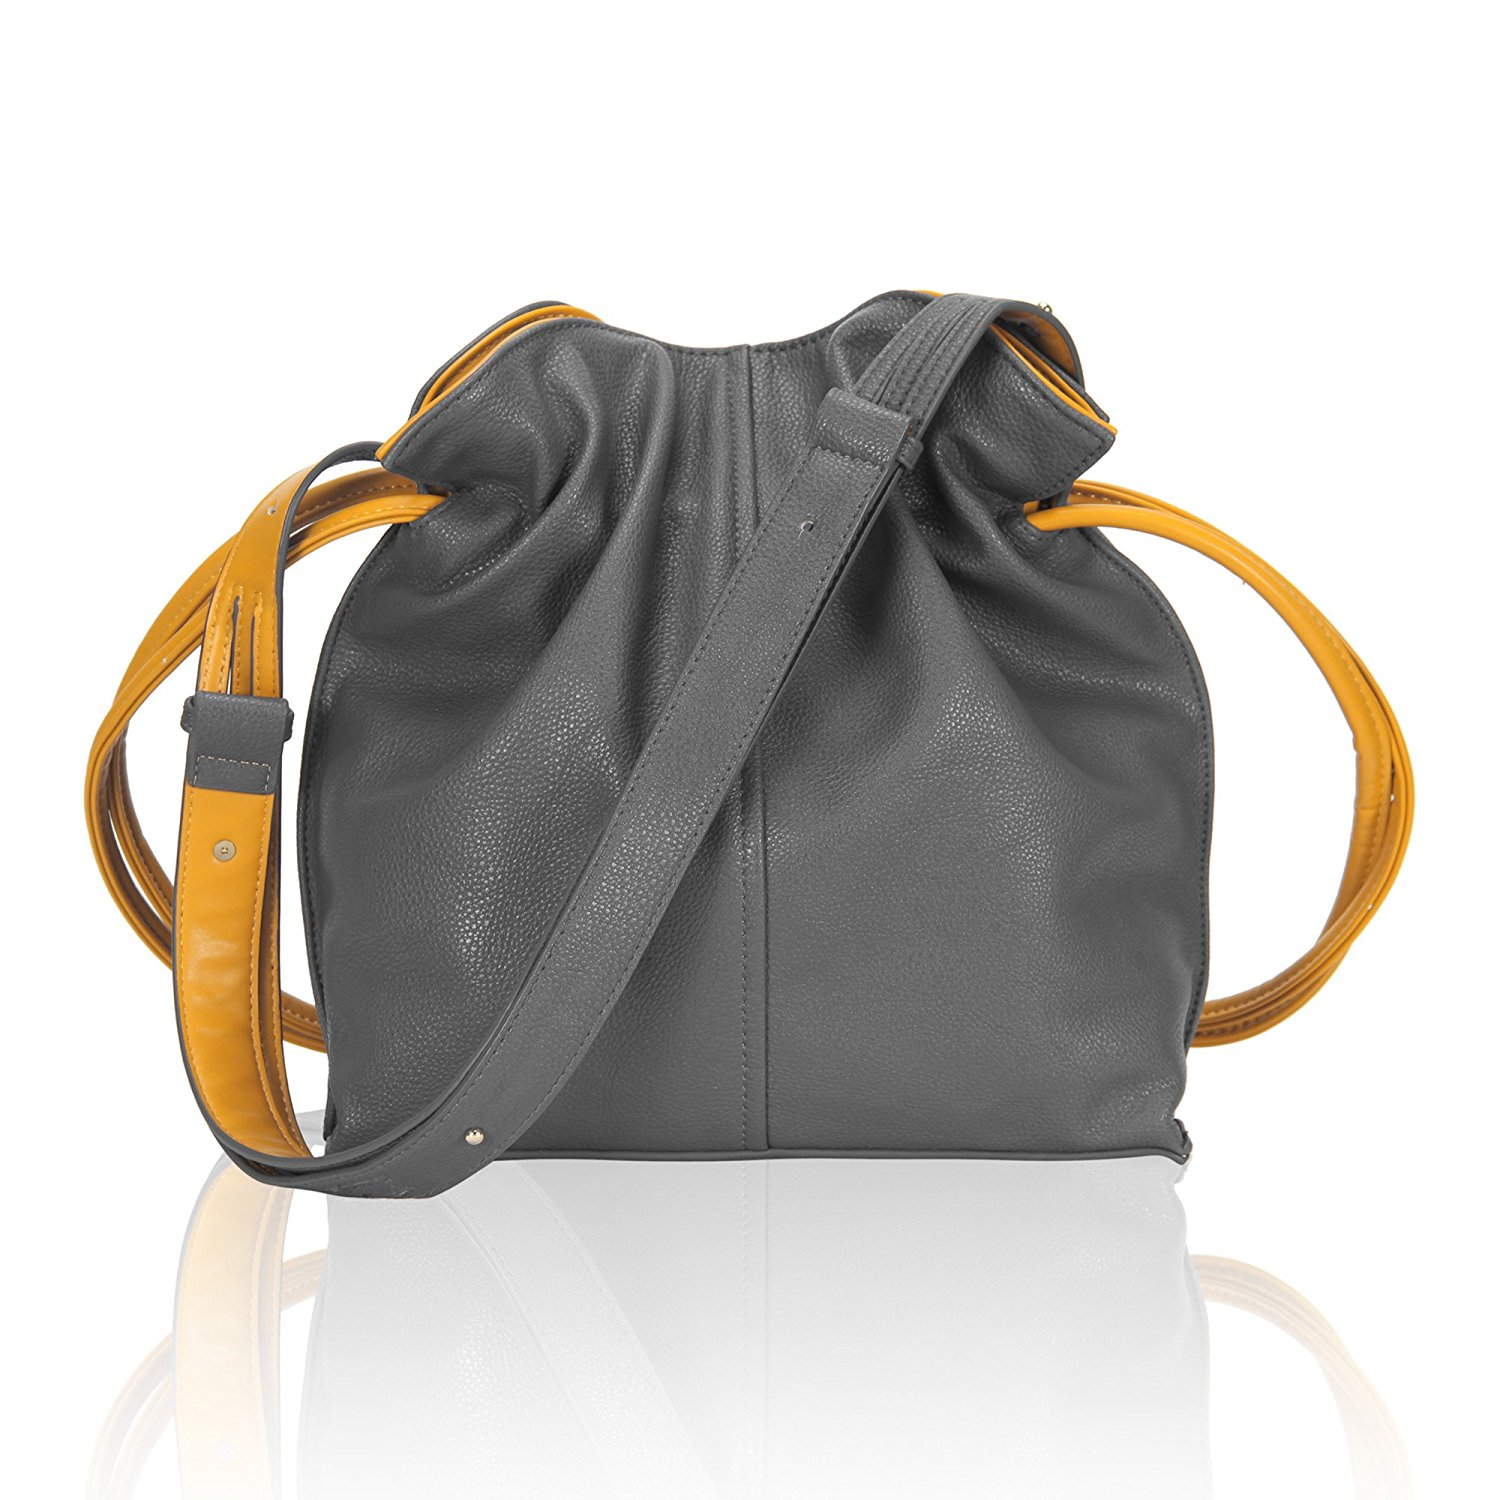 4e90648d55b0 Get Quotations · Leather Drawstring Bucket Bag Crossbody Shoulder Bag for  Women